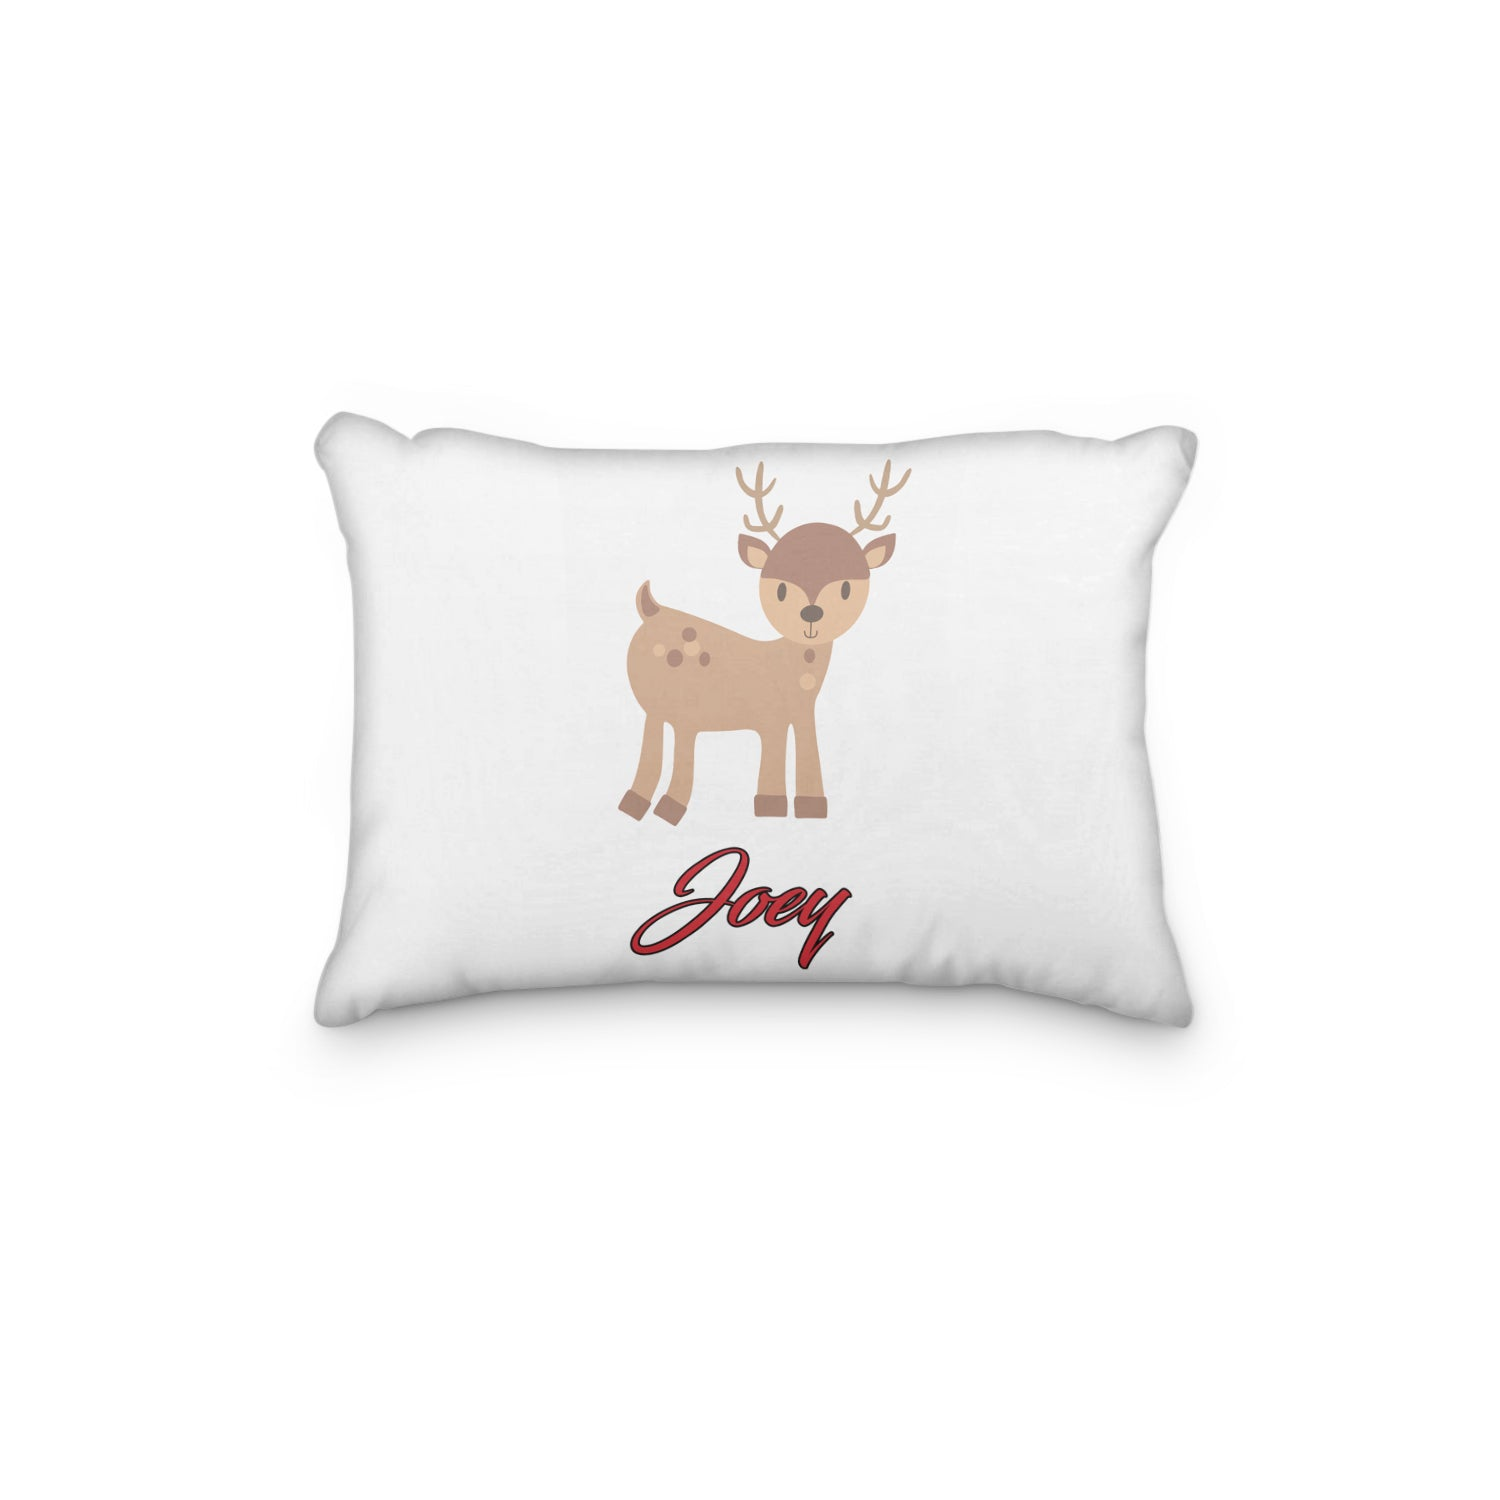 Reindeer Standing Personalized Pillowcase - Incandescently